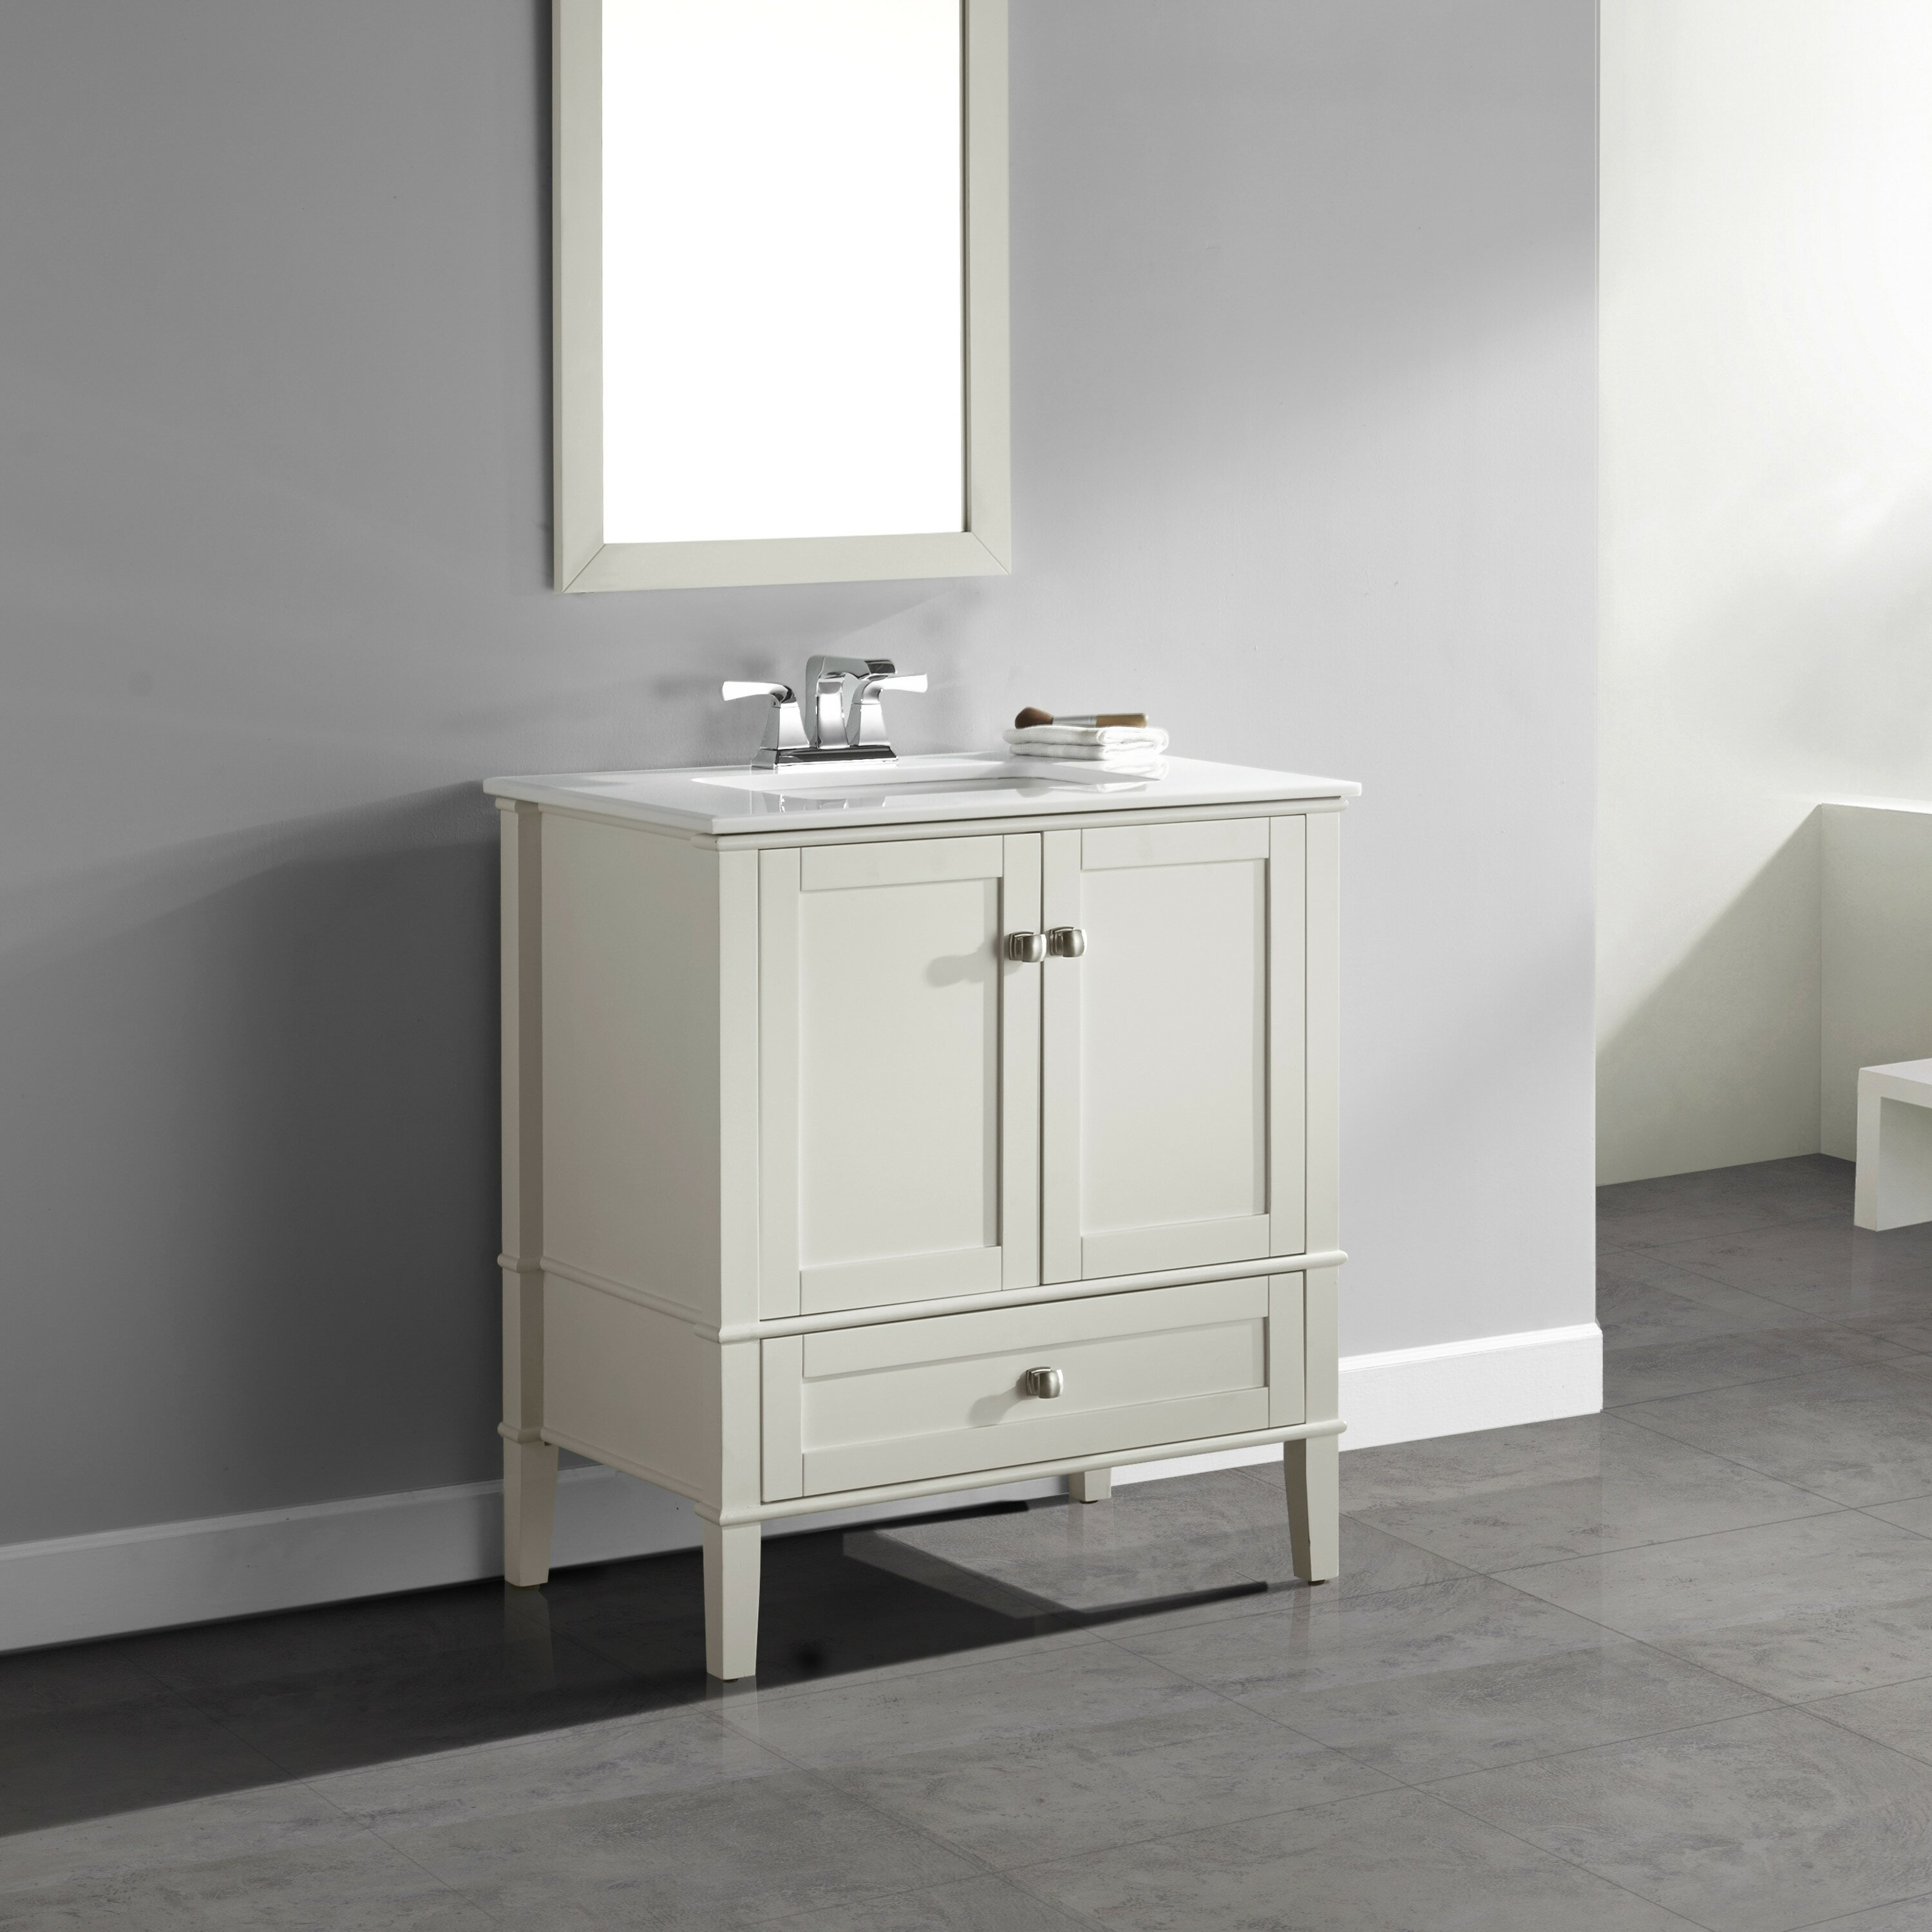 Bathroom Single Vanity Simpli Home Chelsea 31 Single Bathroom Vanity Set Reviews Wayfair